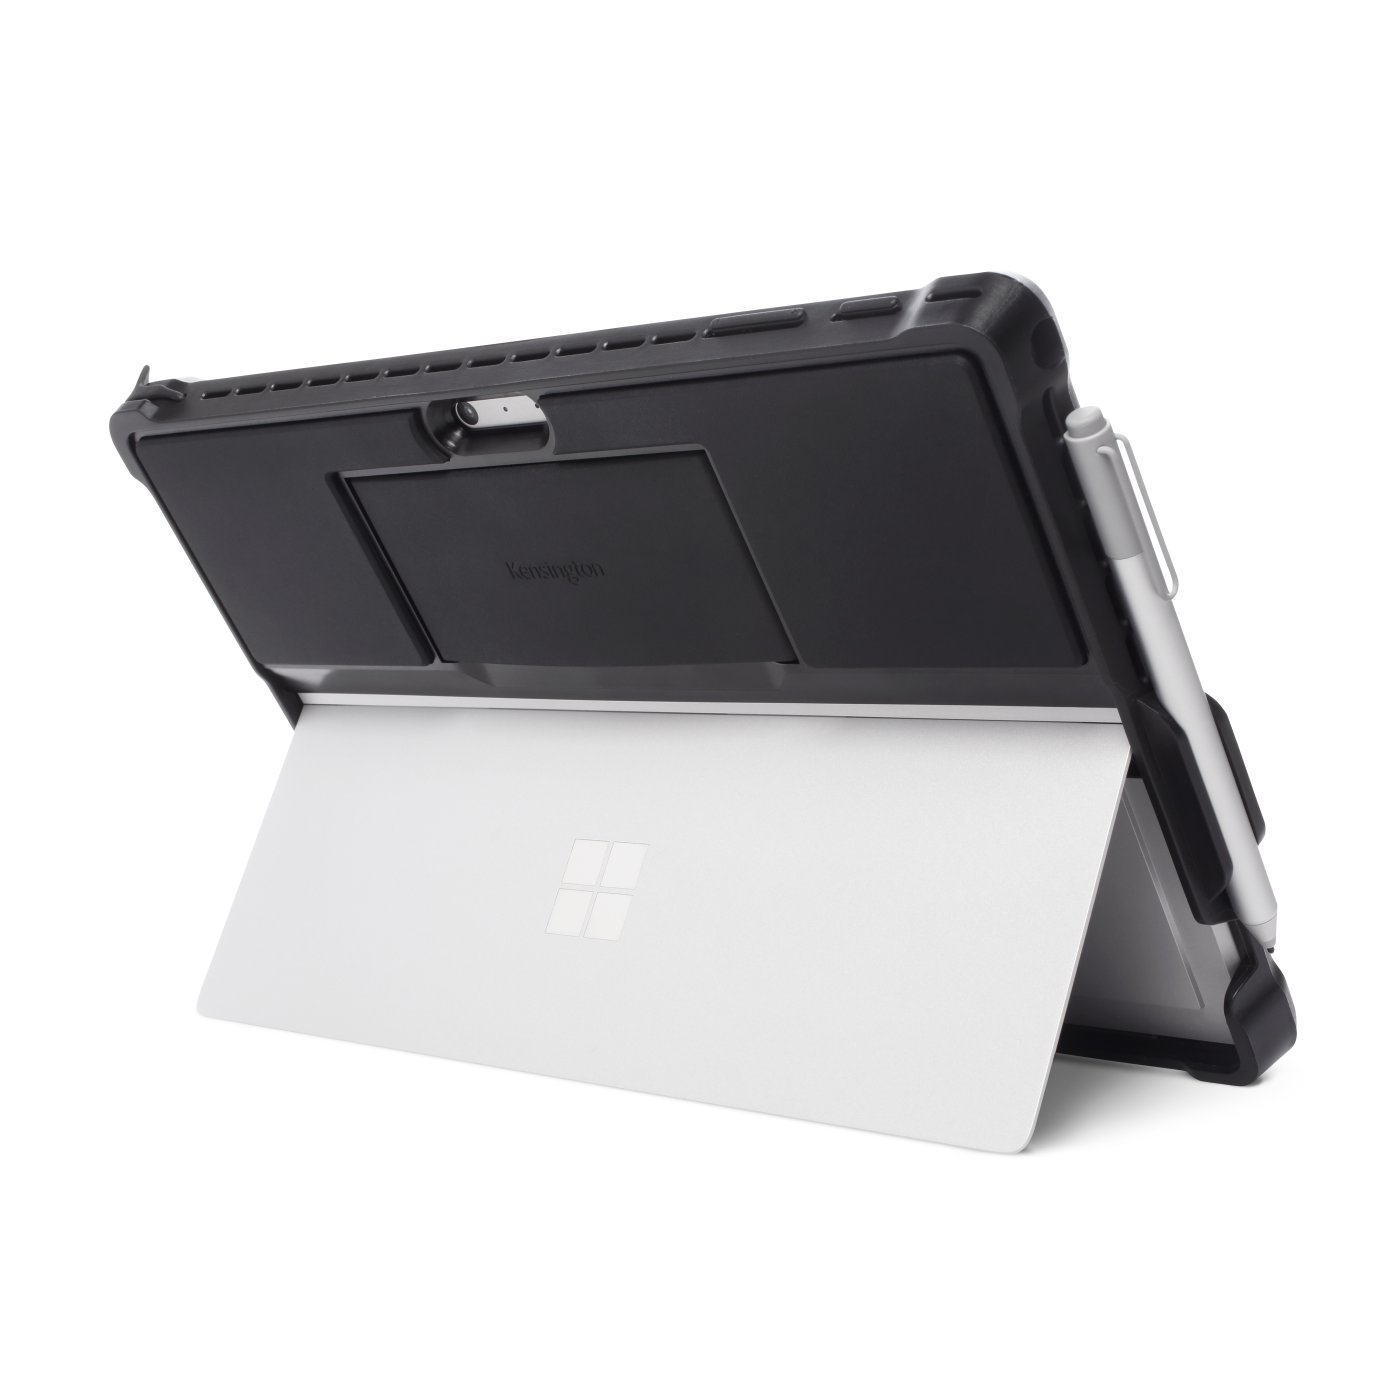 KENSINGTON BlackBelt™ 2nd Degree Rugged Case for Surface™ Pro & Surface™ Pro 4 K97443WW